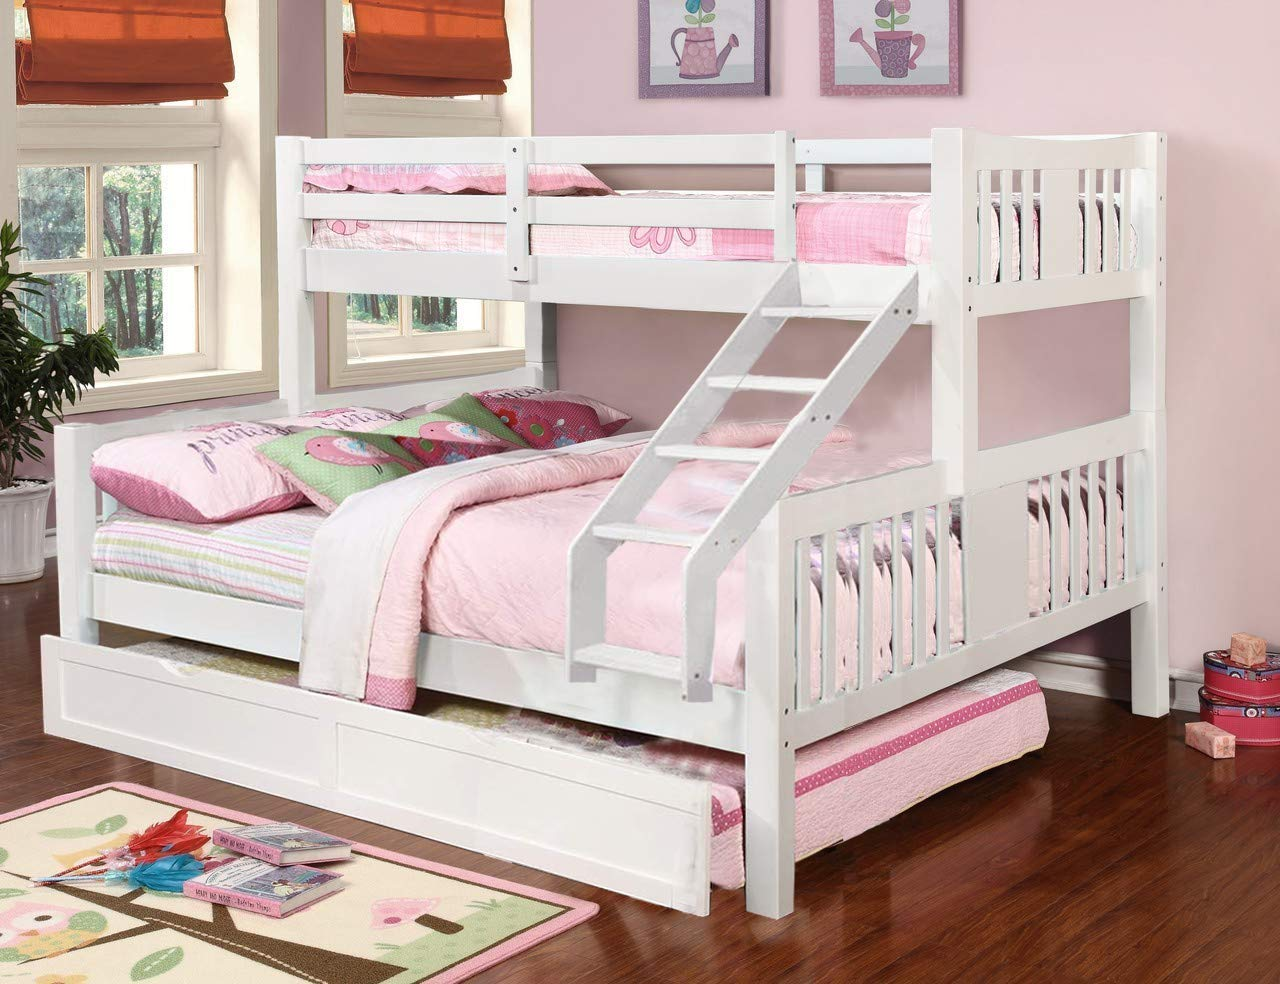 Aprodz Ashmo White Twin Over Queen Bunk Bed With Trundle Amazon In Furniture